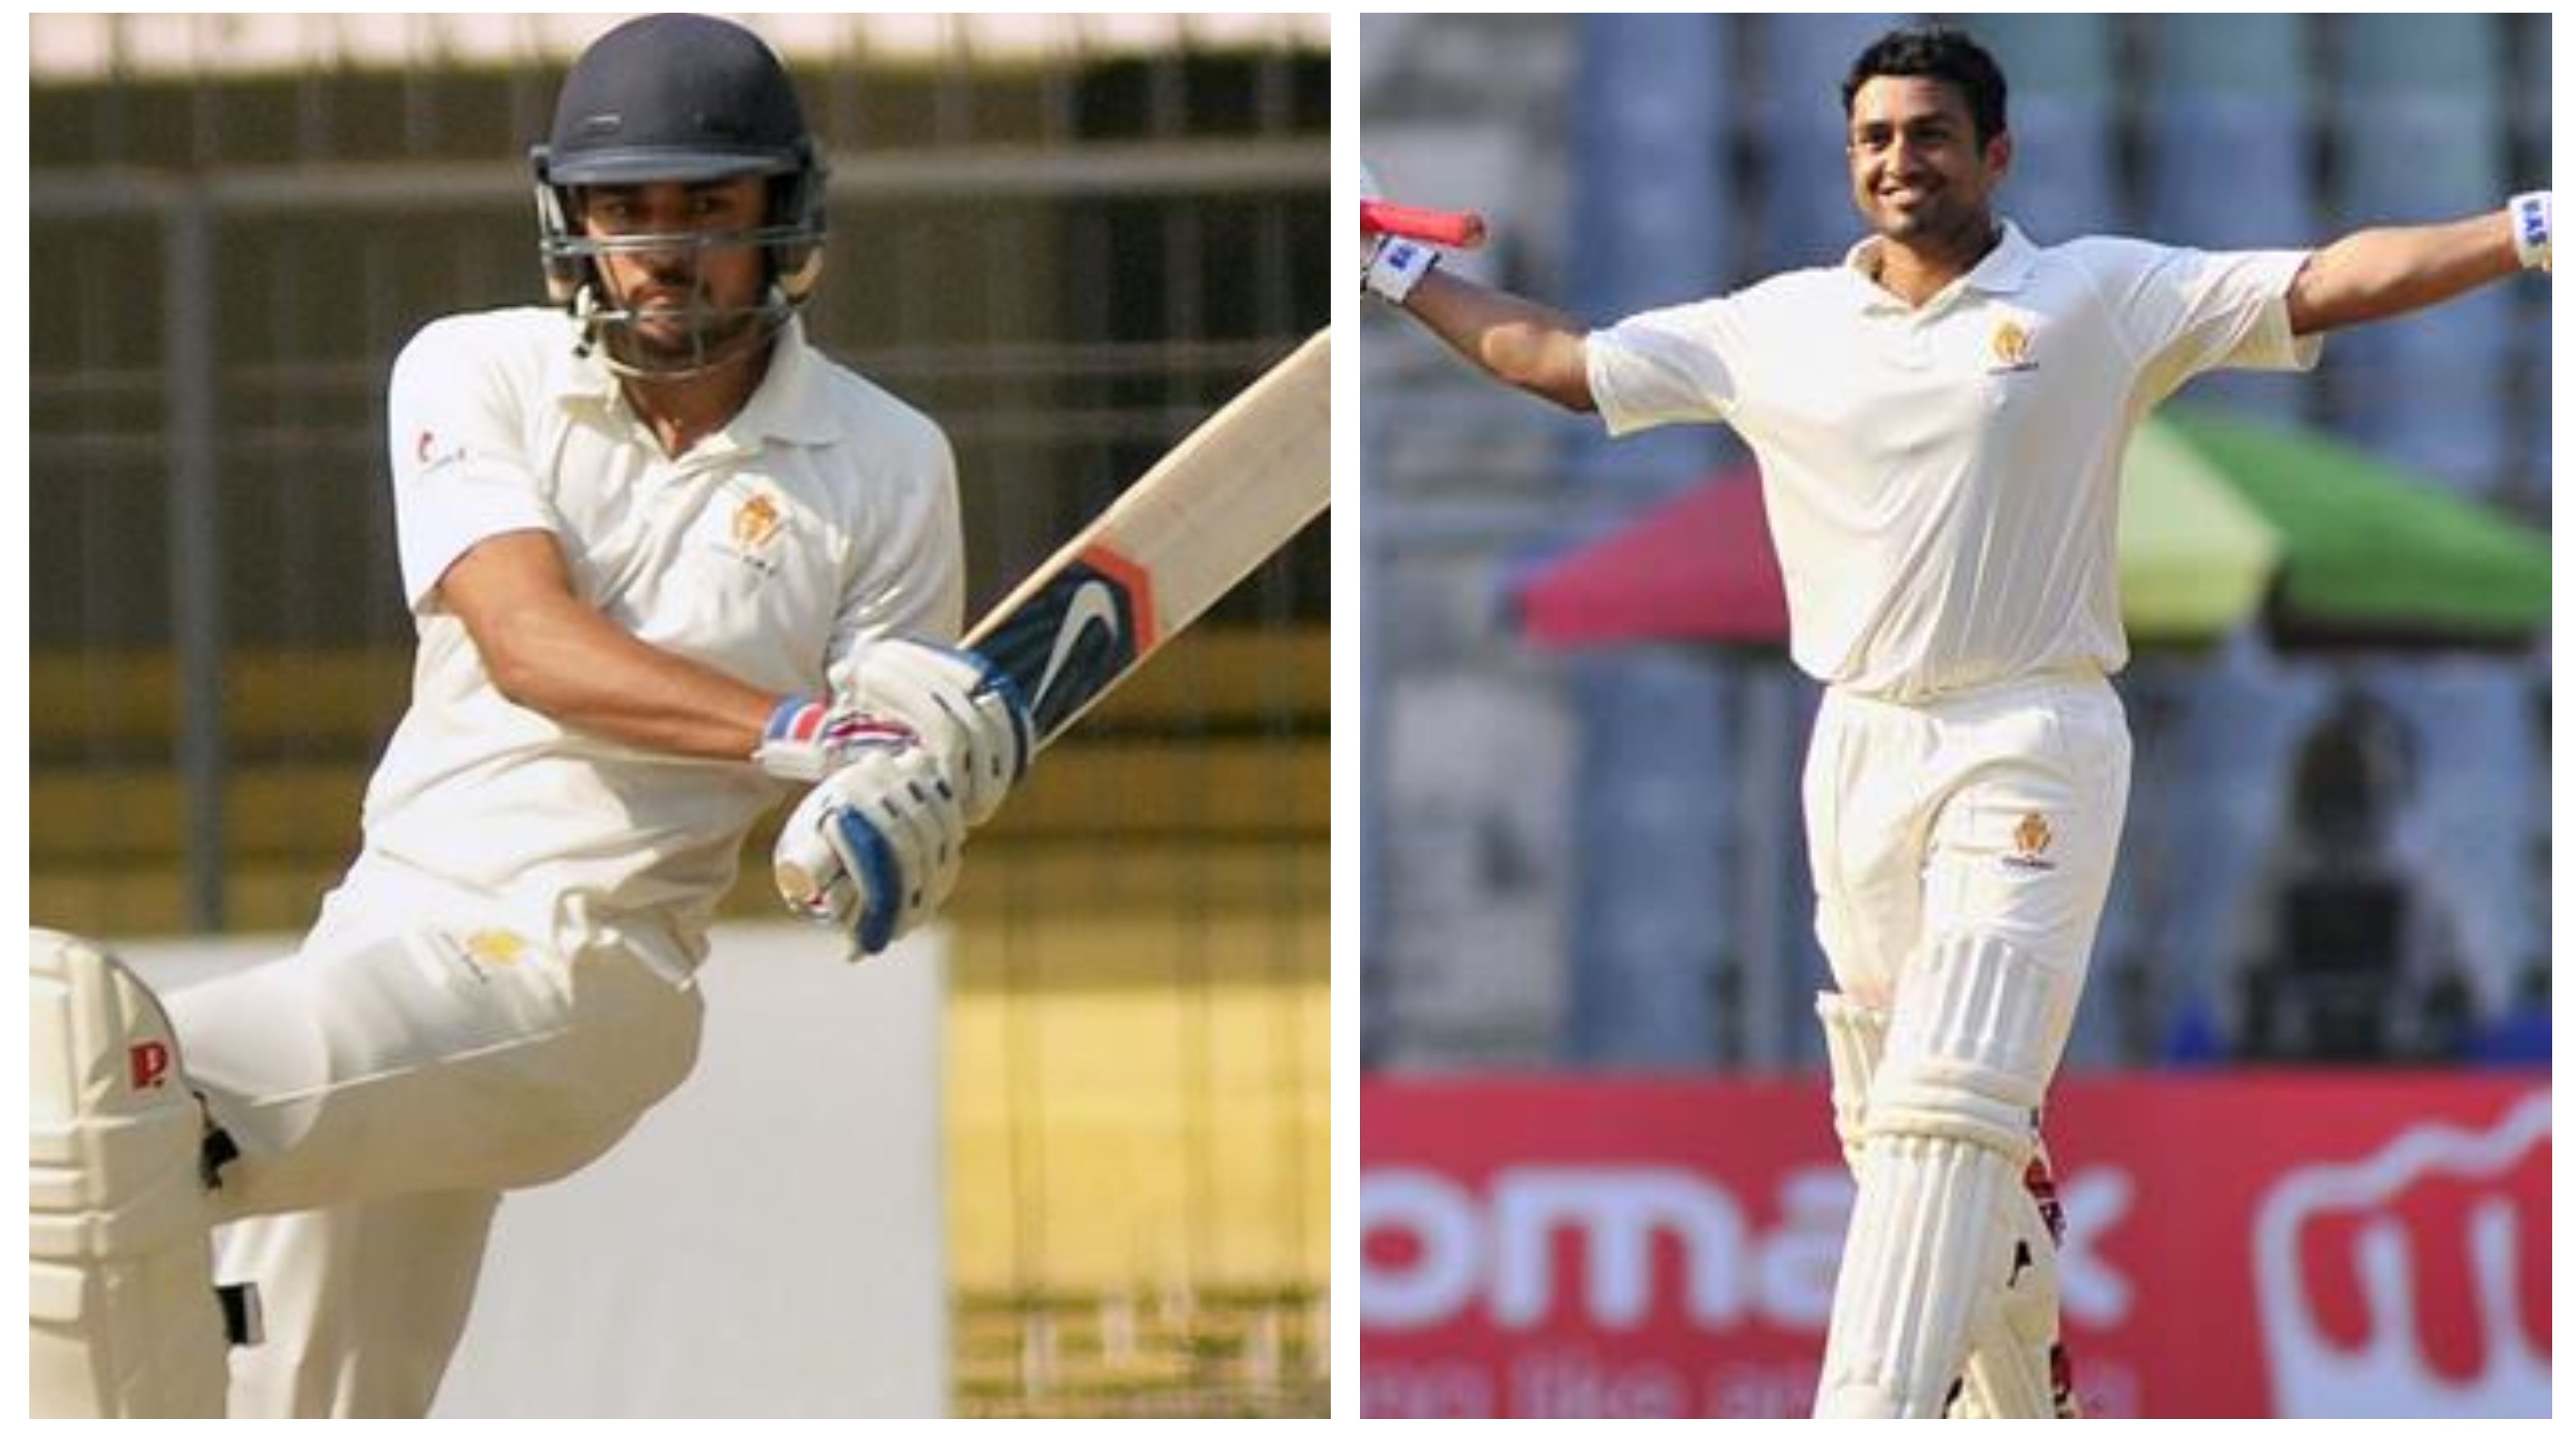 Ranji Trophy 2018-19: Pandey, Nair shine as Karnataka beats Rajasthan to secure the semi-final berth